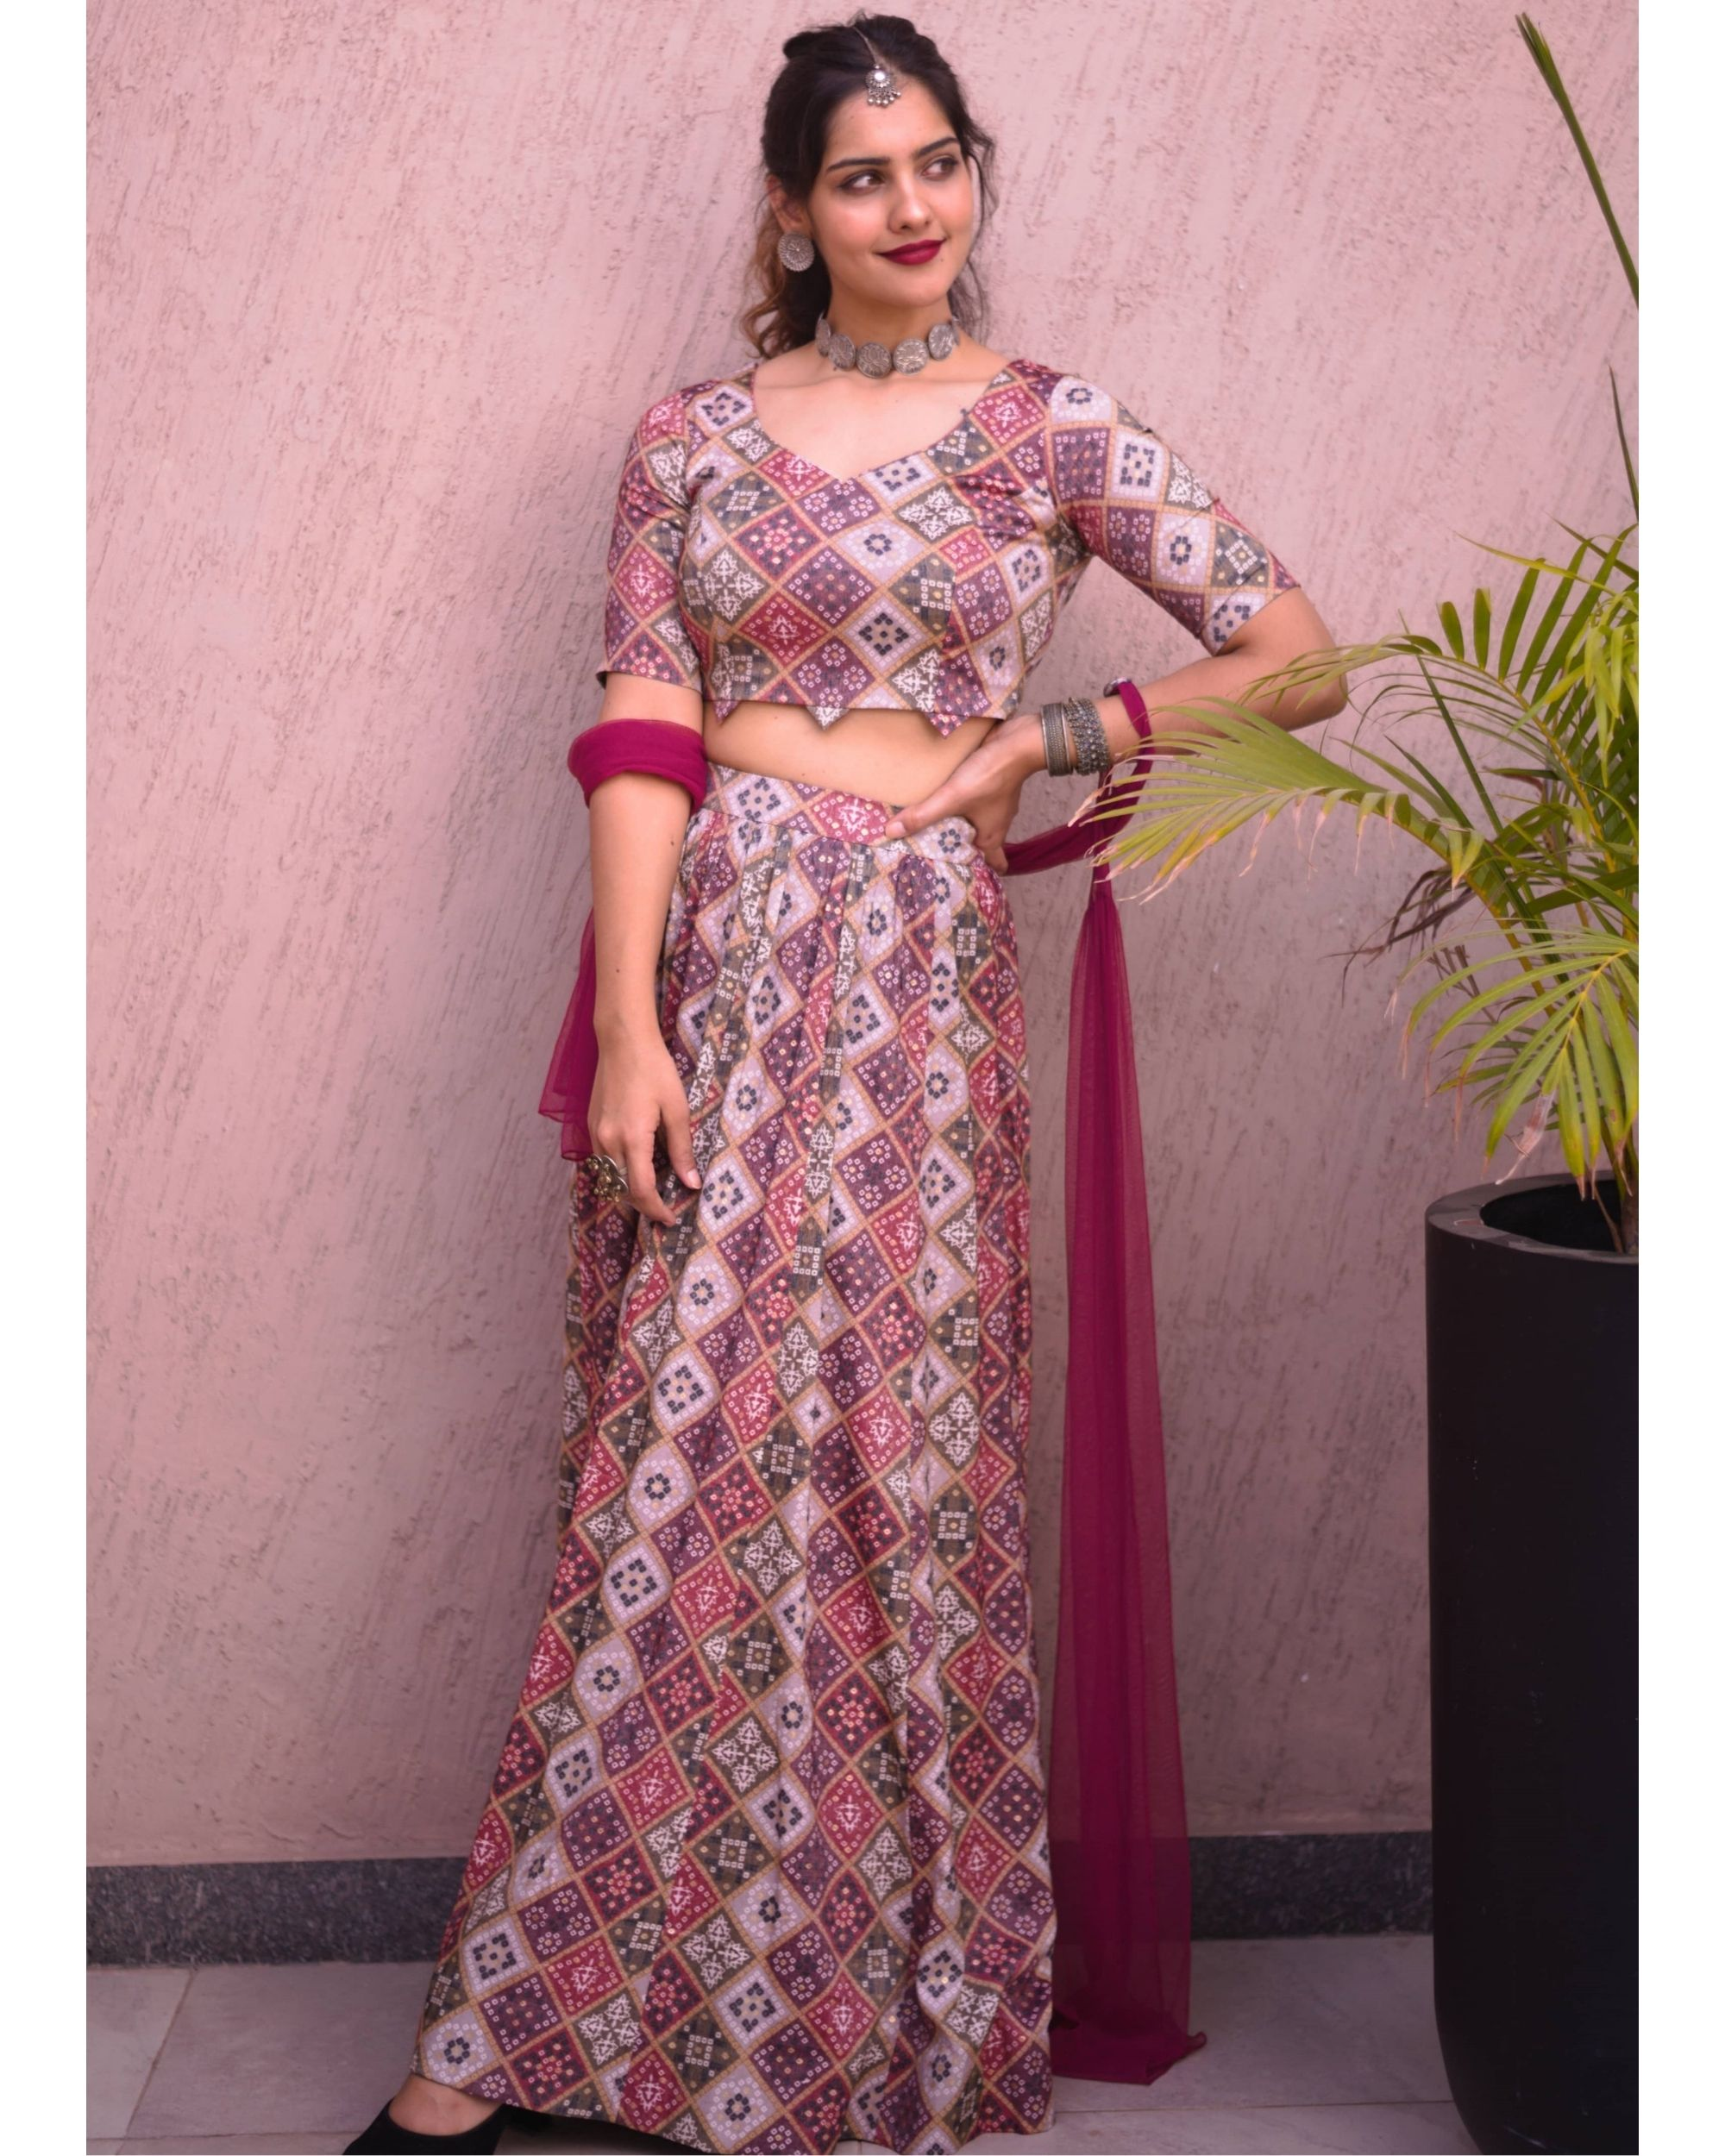 Beige gold and wine bandhej crop top and skirt with dupatta - set of three